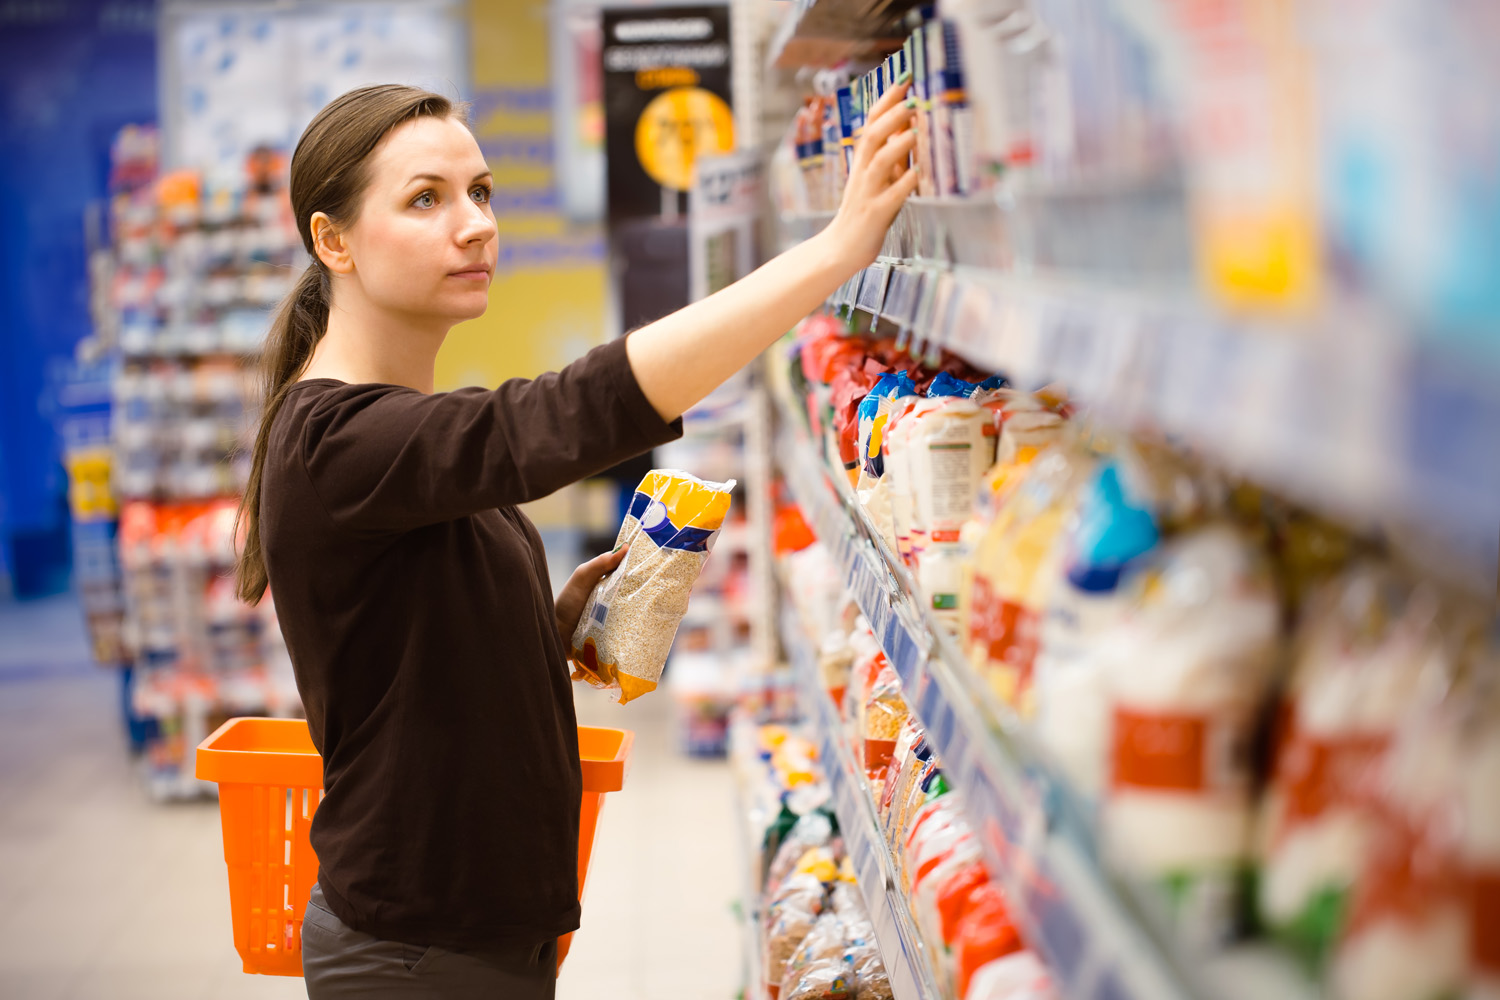 A young girl in a grocery supermarket